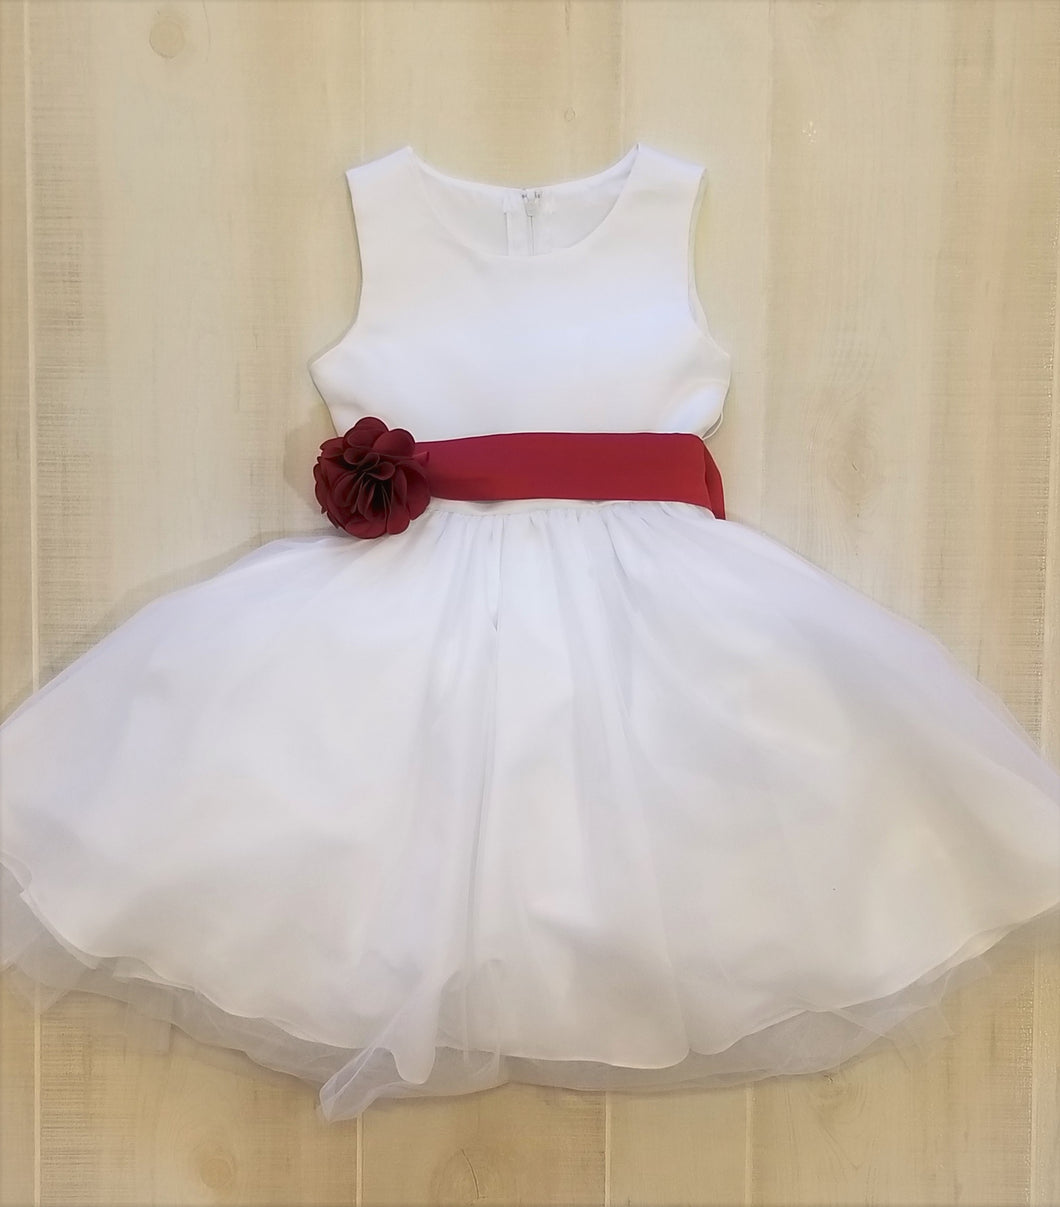 Ivory with Burgundy Sash, Flower Girl Gown